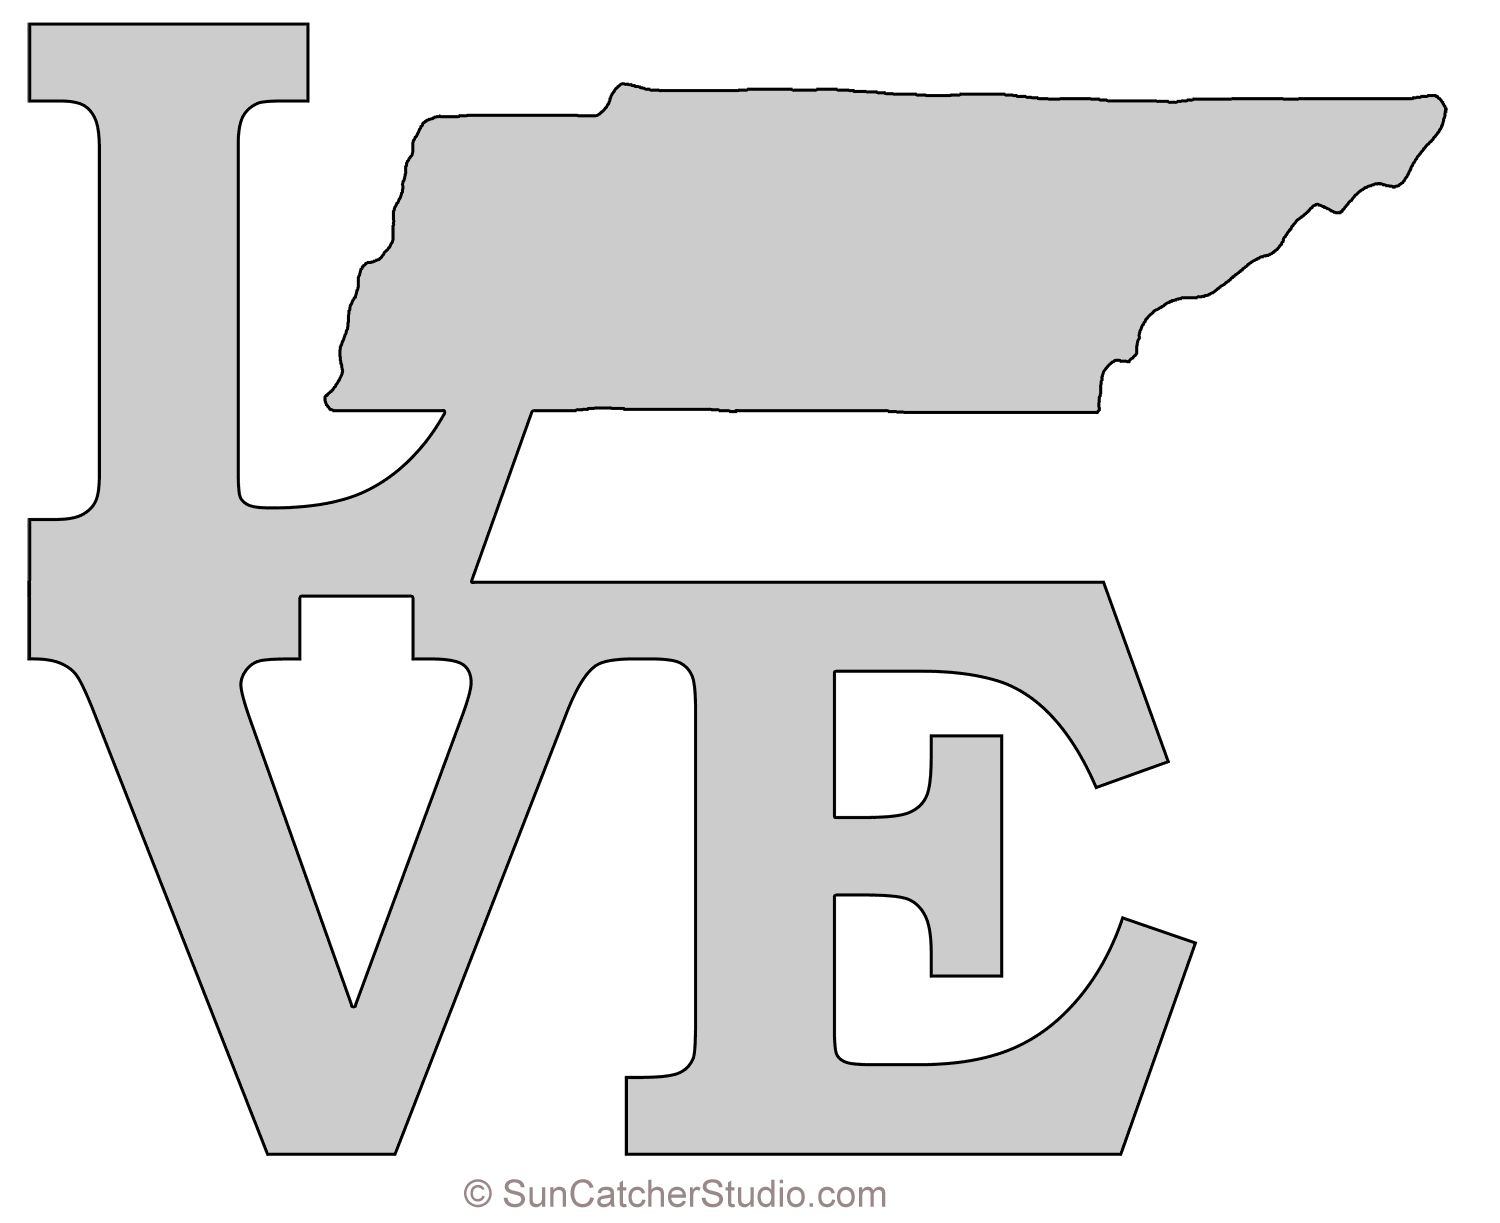 Tennessee Love Map Outline Scroll Saw Pattern Shape State Stencil Clip Art Printable Downloadable Free Templ Scroll Saw Patterns Free Map Outline Tennessee Map